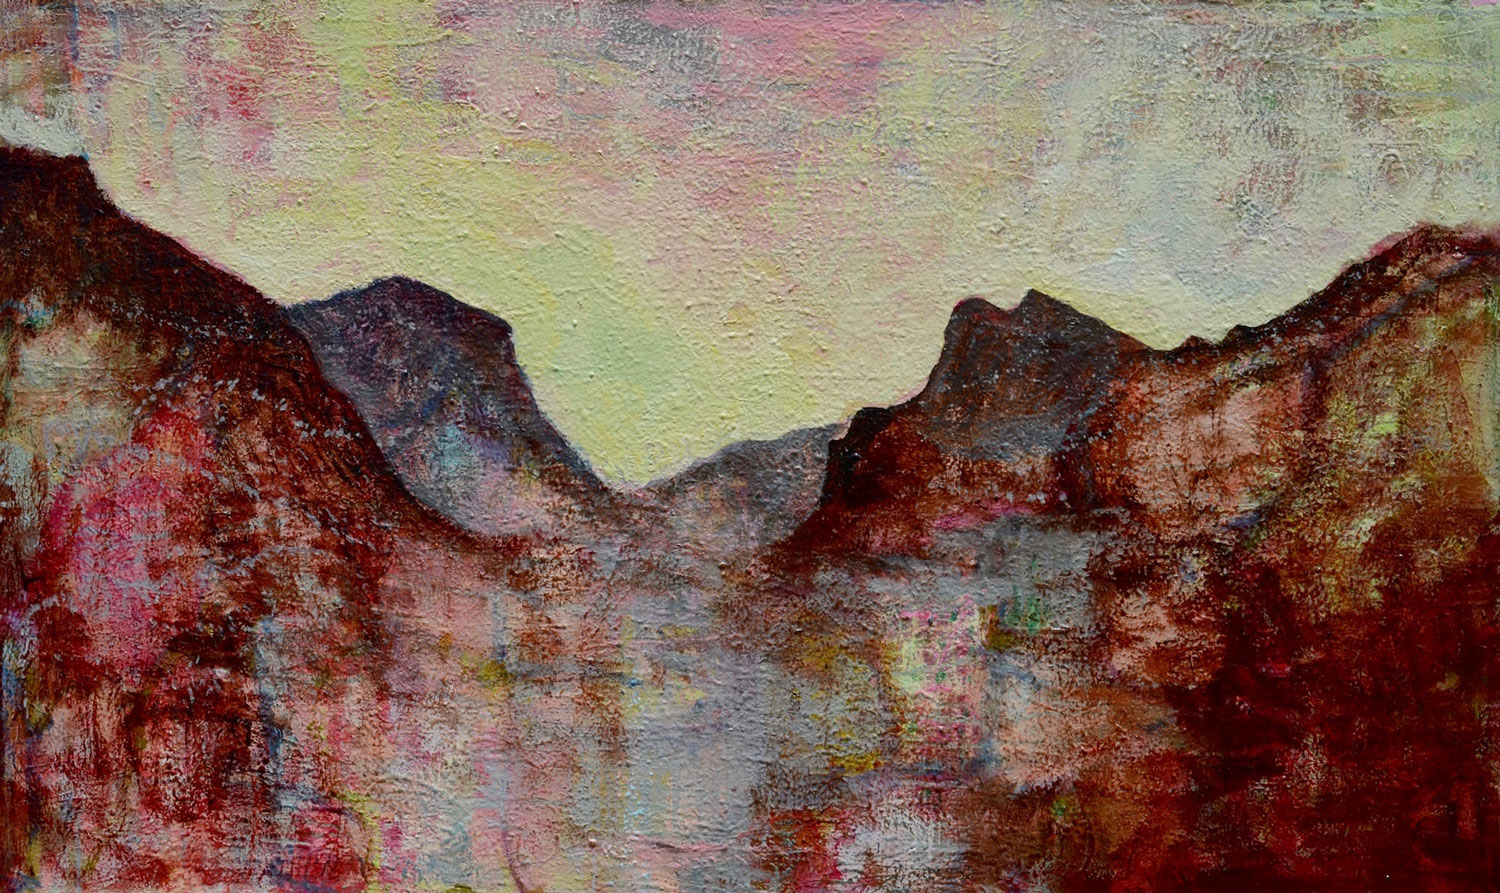 Valley Study in Red